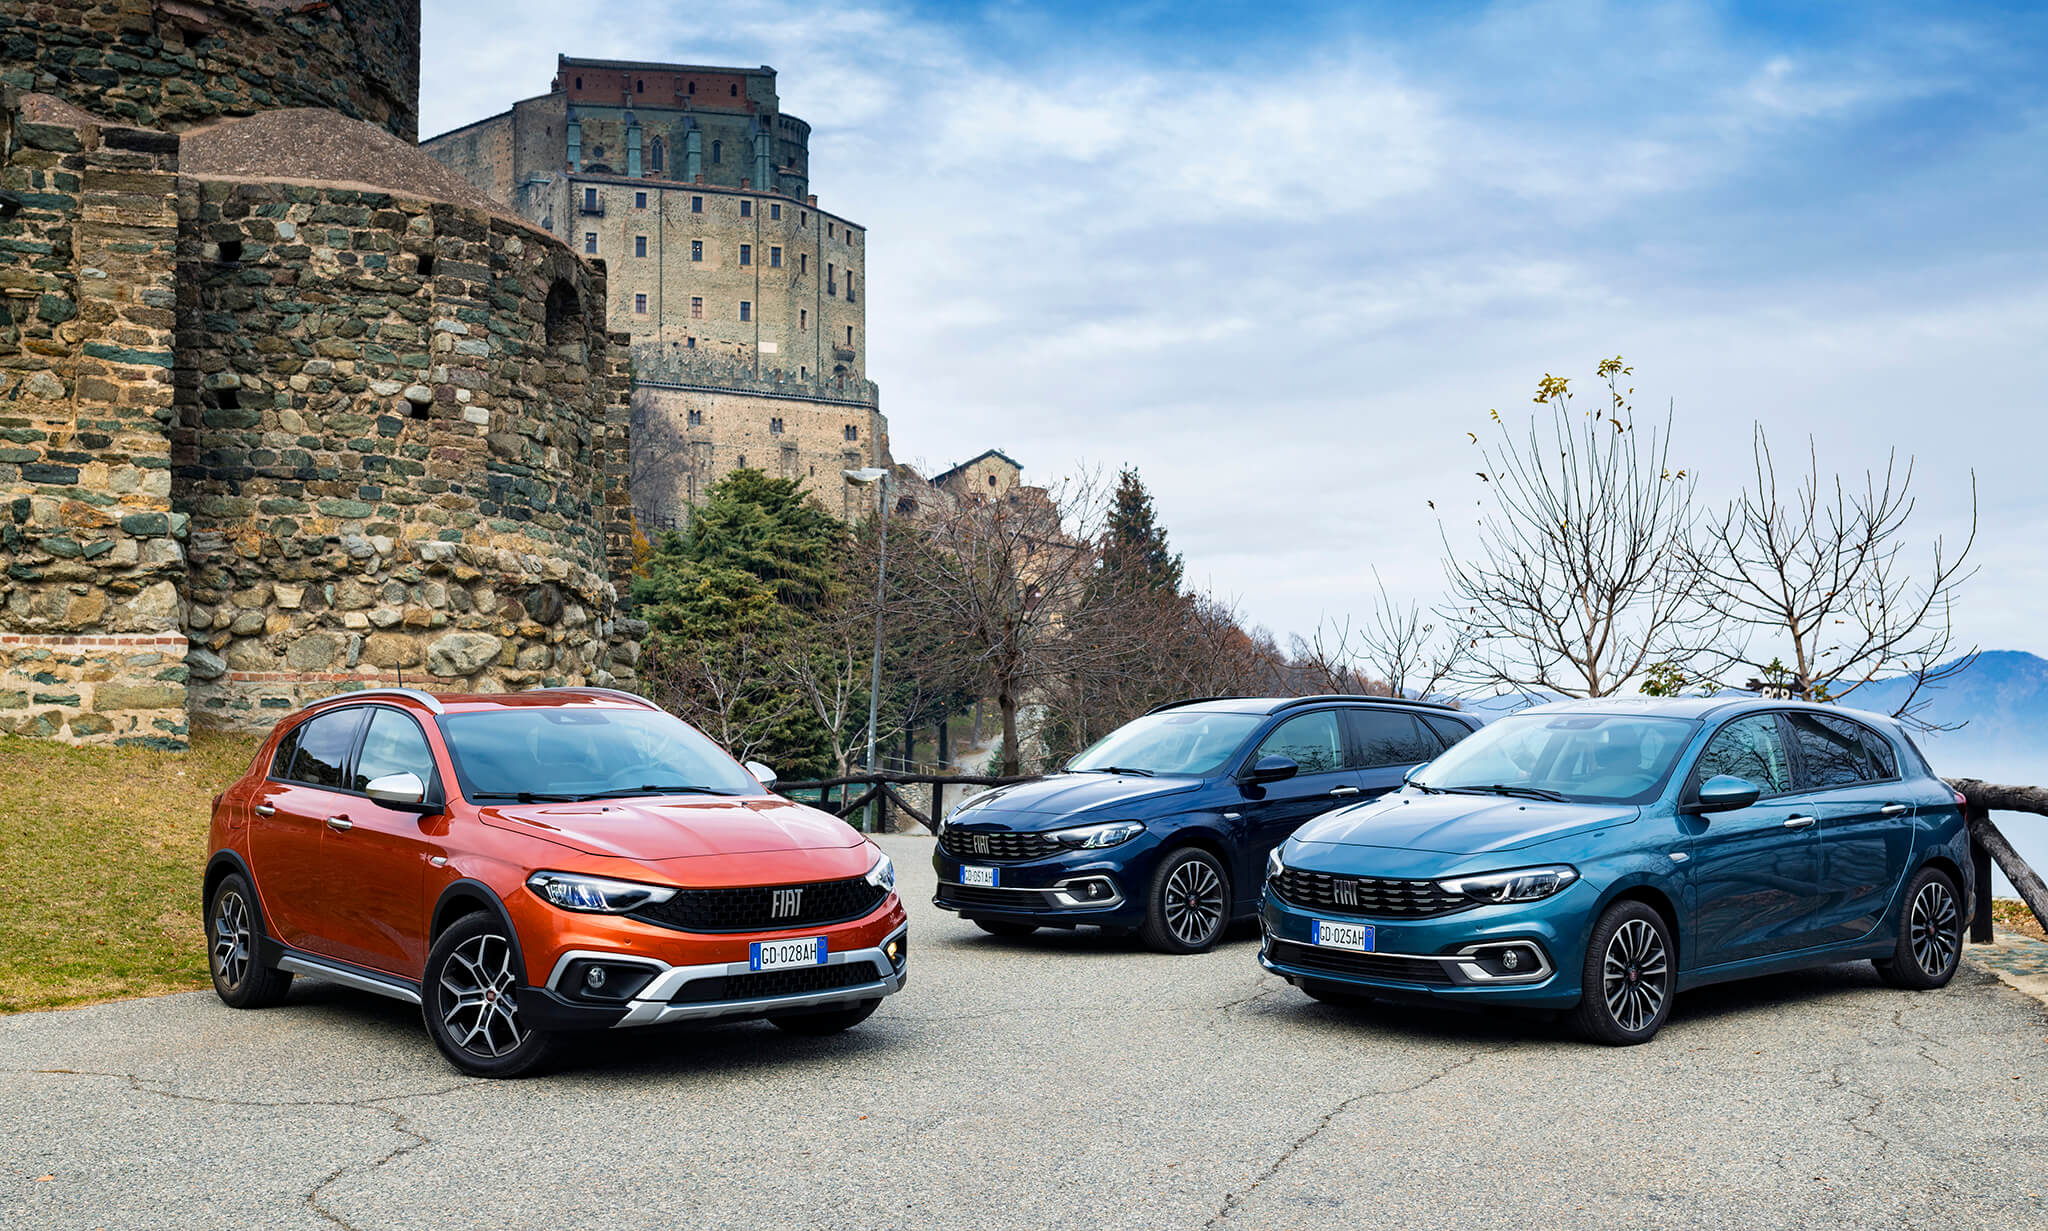 Gama Fiat Tipo 2021